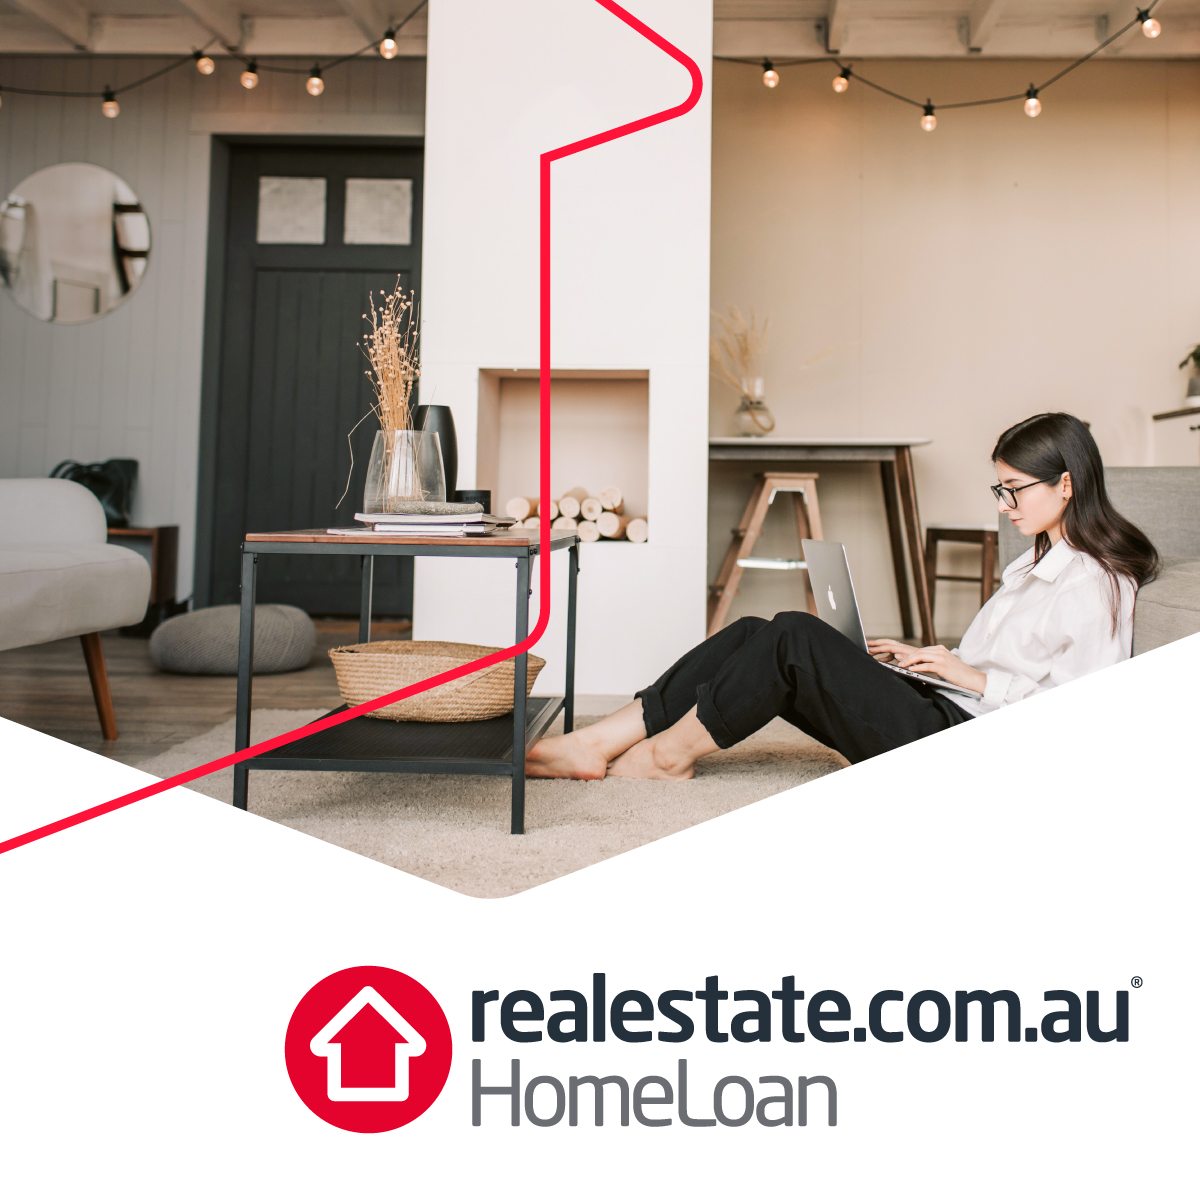 REA Group Realestate.com.au Homeloan Brand Identity Design